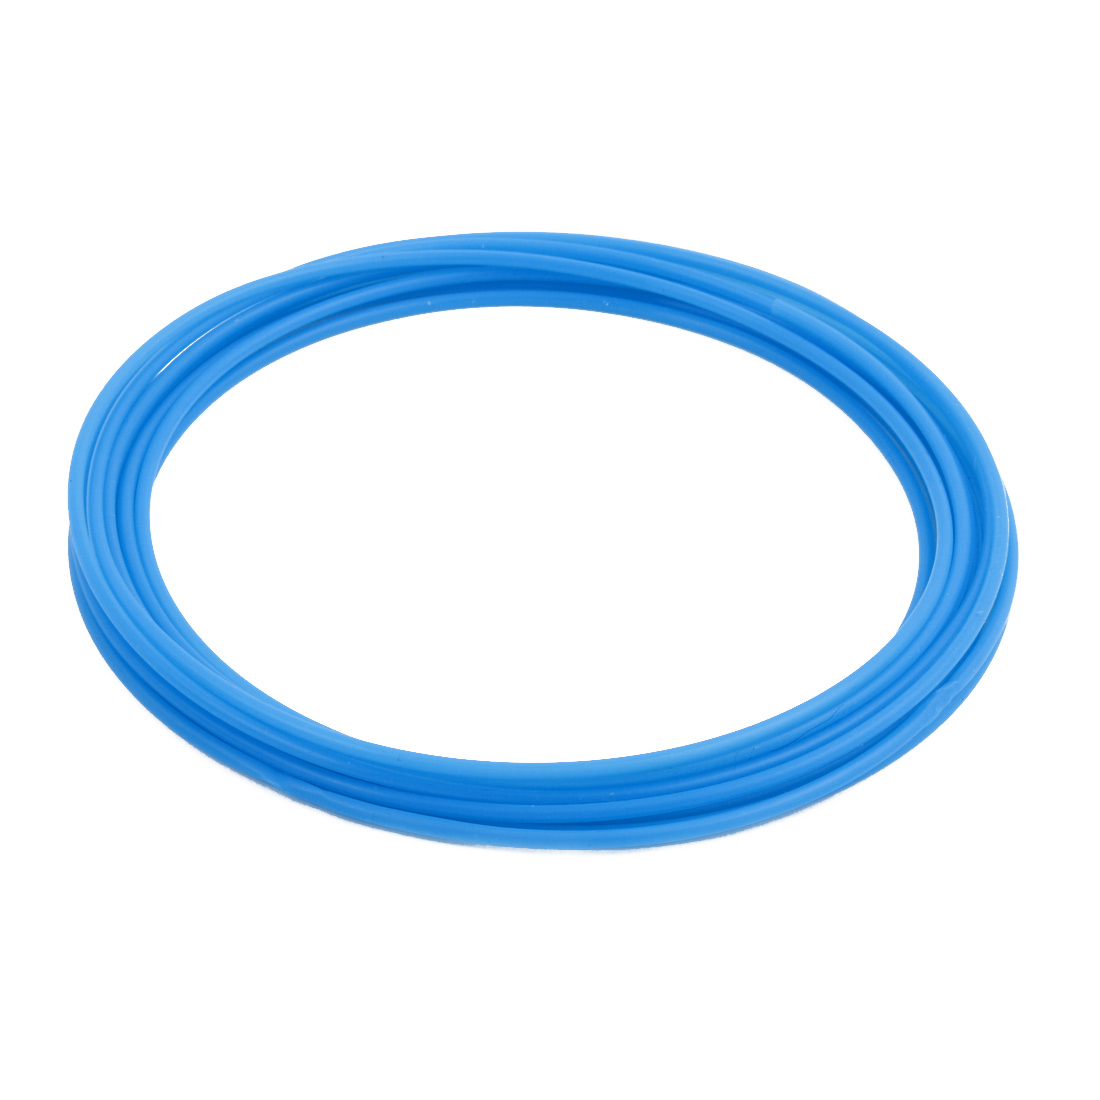 2.16mmx2.56mm PTFE Resistant High Temperature Blue Tubing 5 Meters 16.4Ft